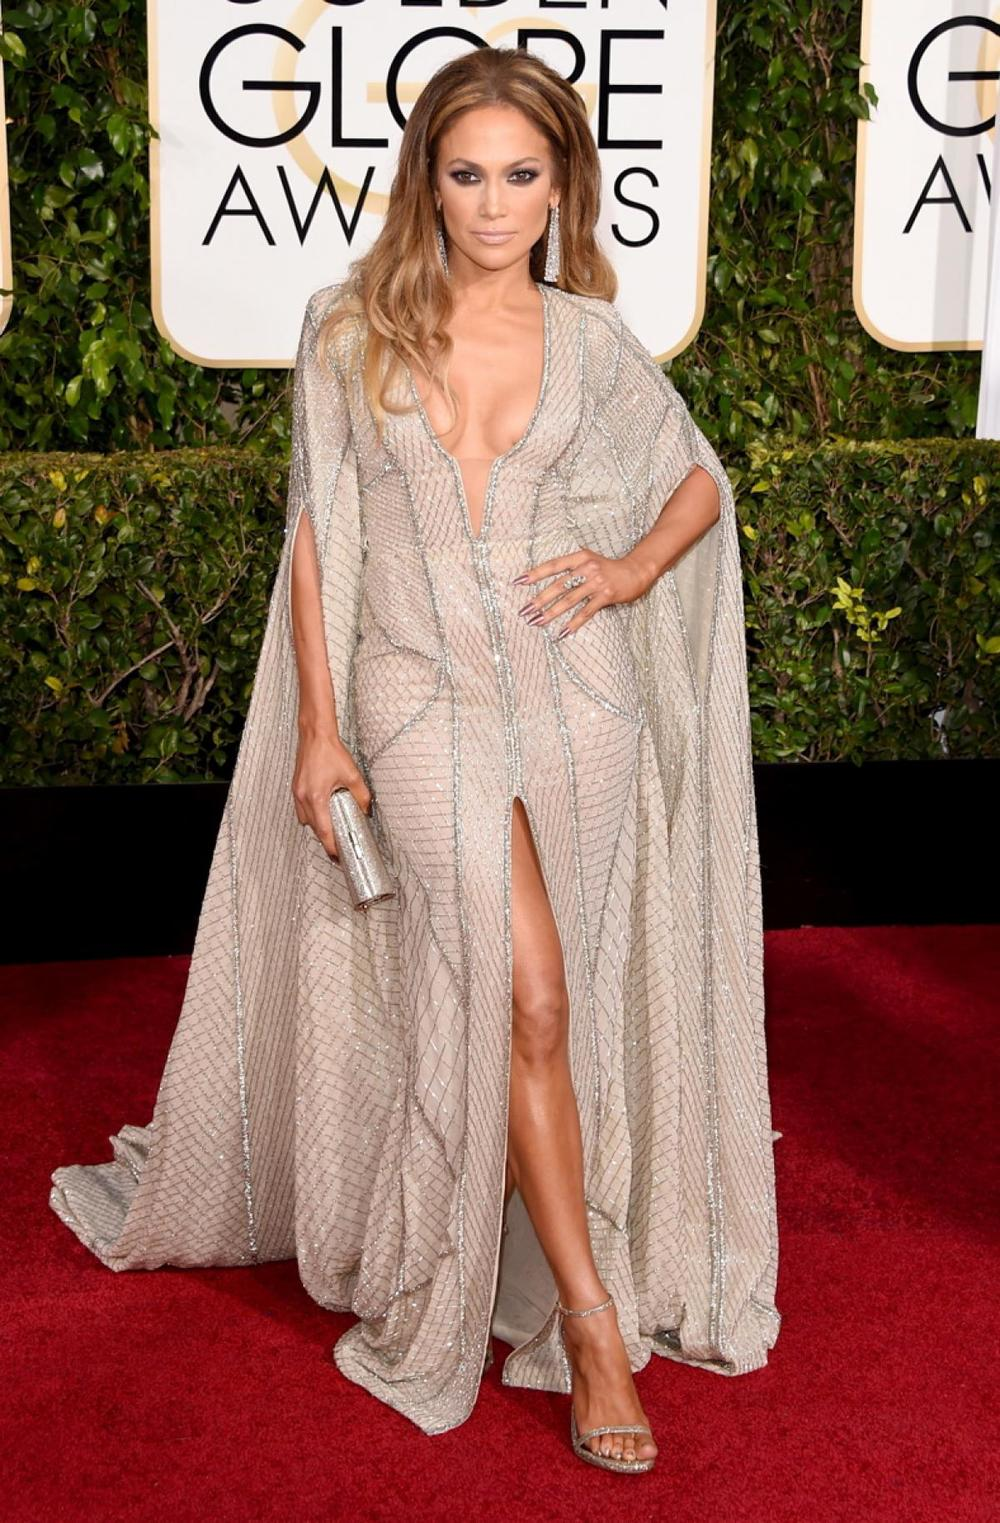 Jennifer Lopez in Zuhair Murad. I live for a cape dress. I could of done without the earrings and the heavy eye makeup. A pulled back pony tail and a beautiful diamond stud earring.